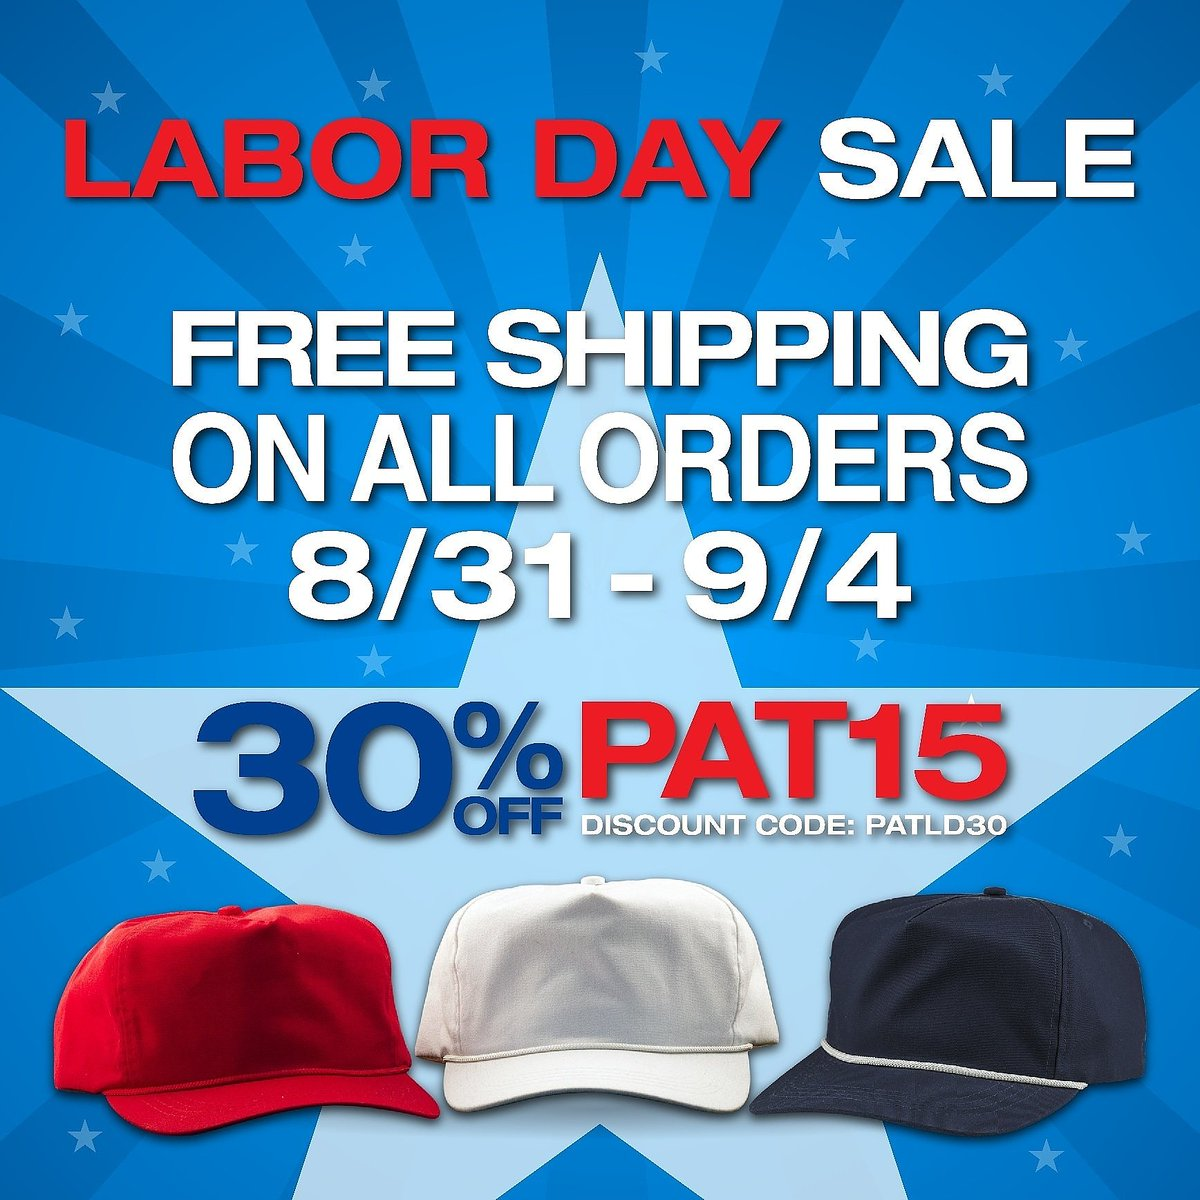 a3d300d6 Style #PAT15 Labor Day Sale is HERE! Free shipping on ALL orders! Also use  code :